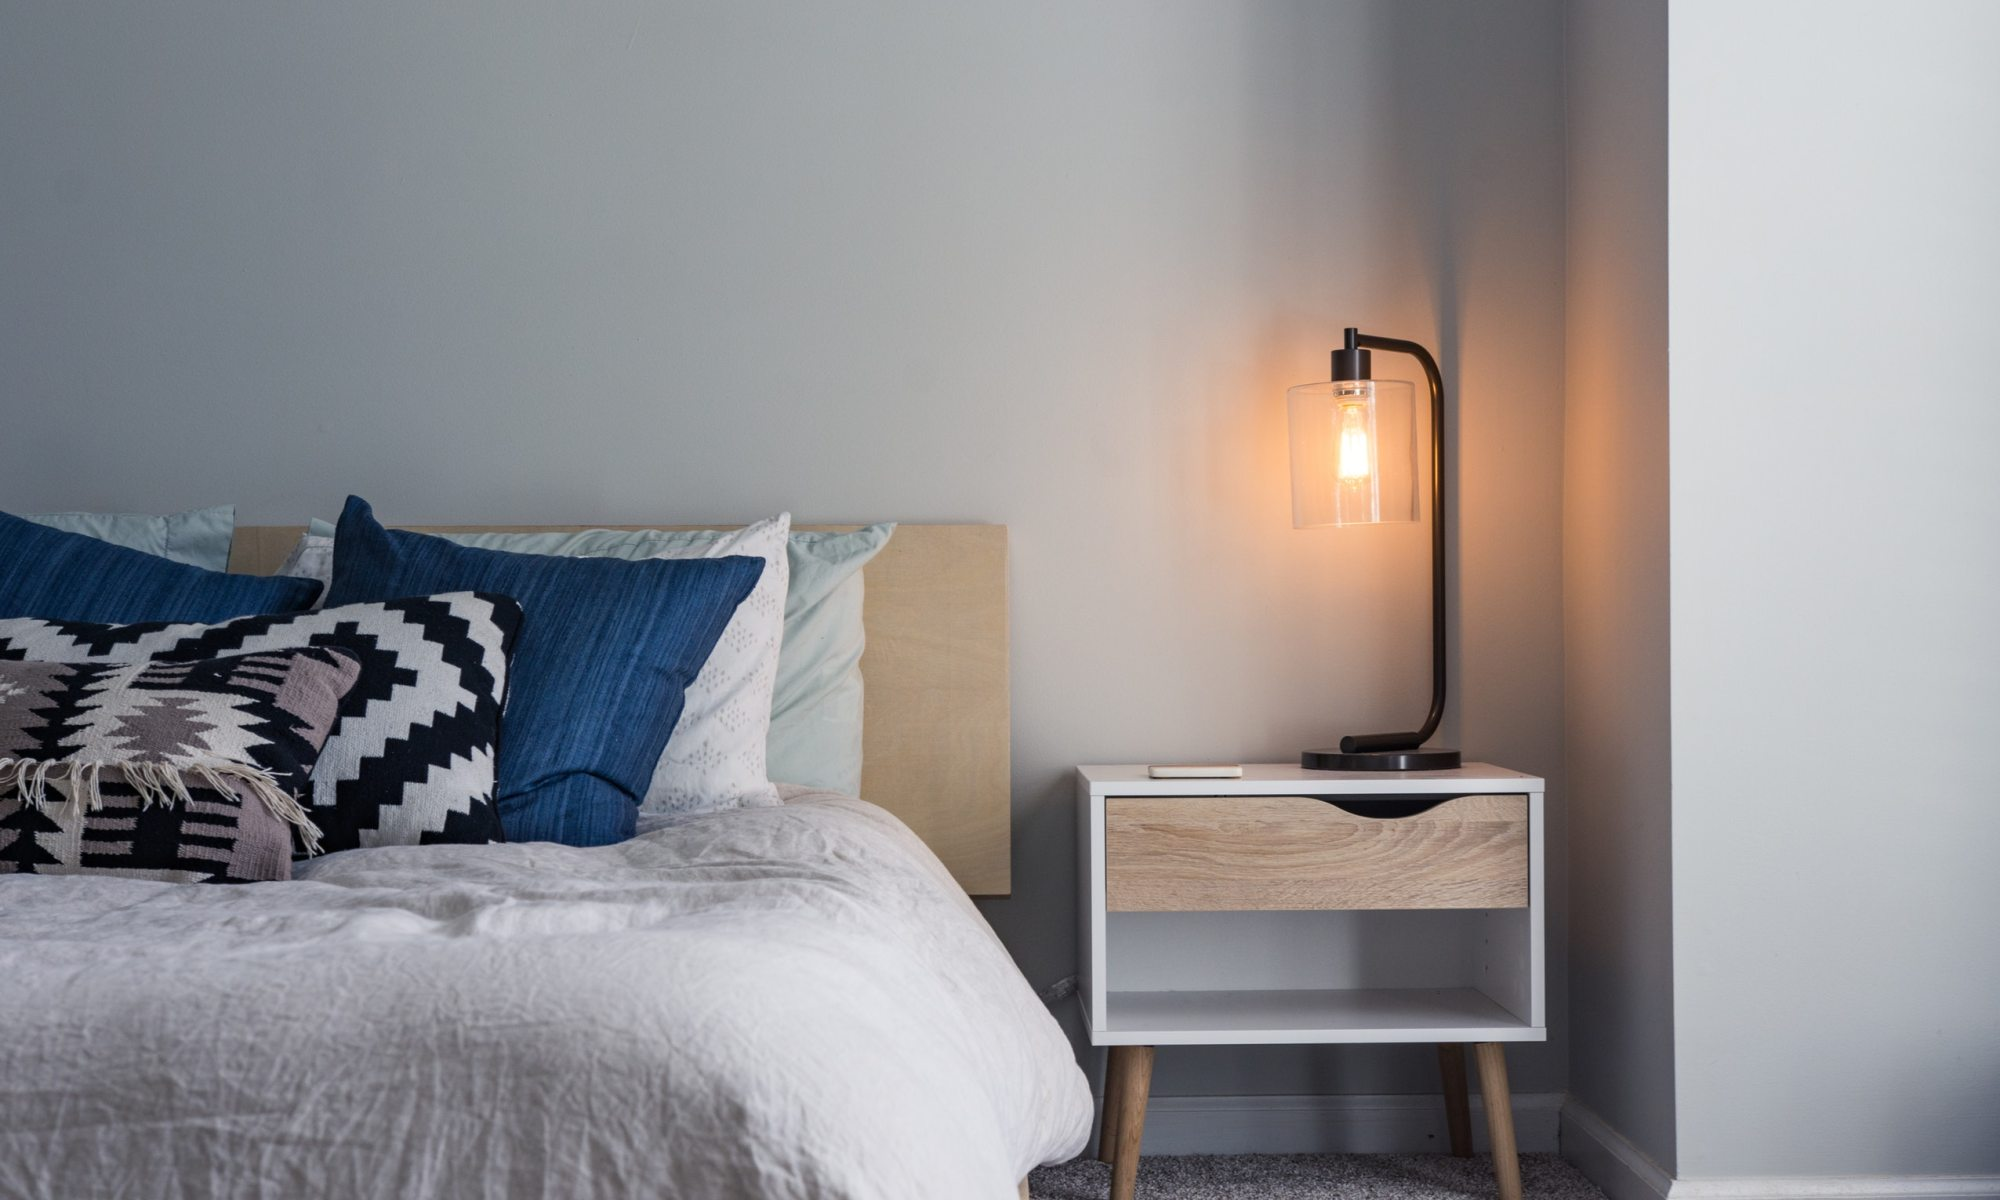 Bedroom with bed and mobile phone on nightstand